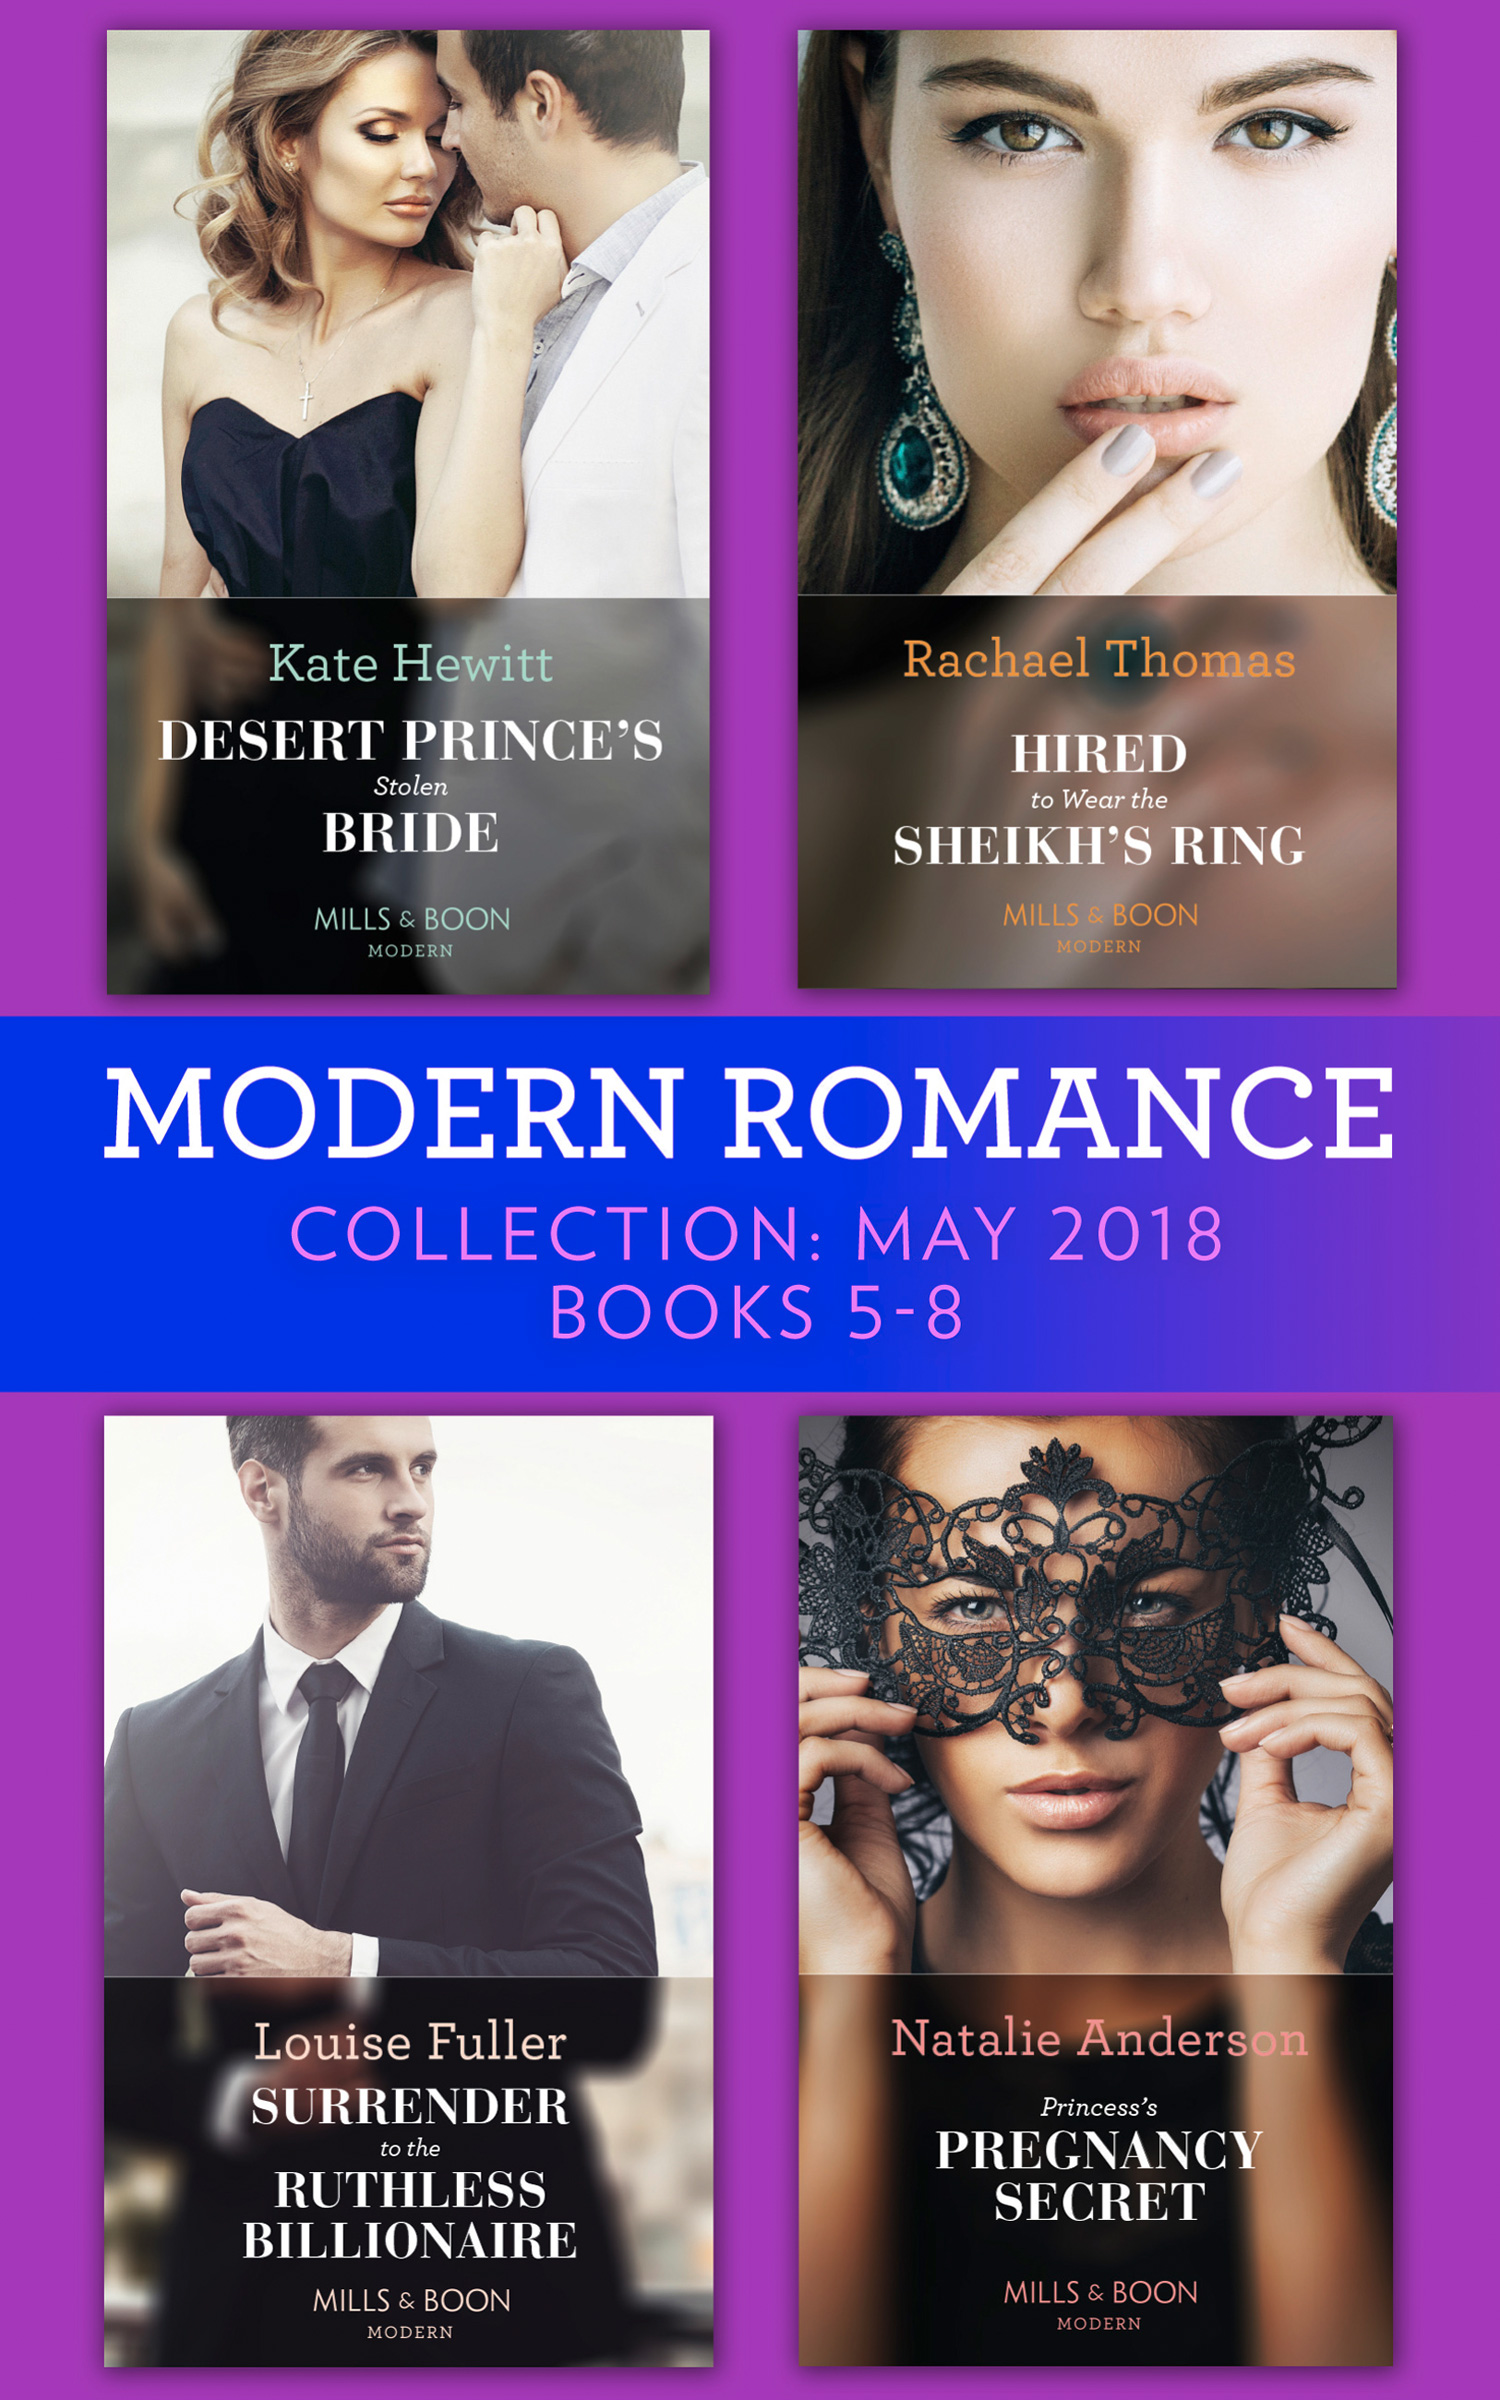 Modern Romance Collection: May 2018 Books 5 - 8